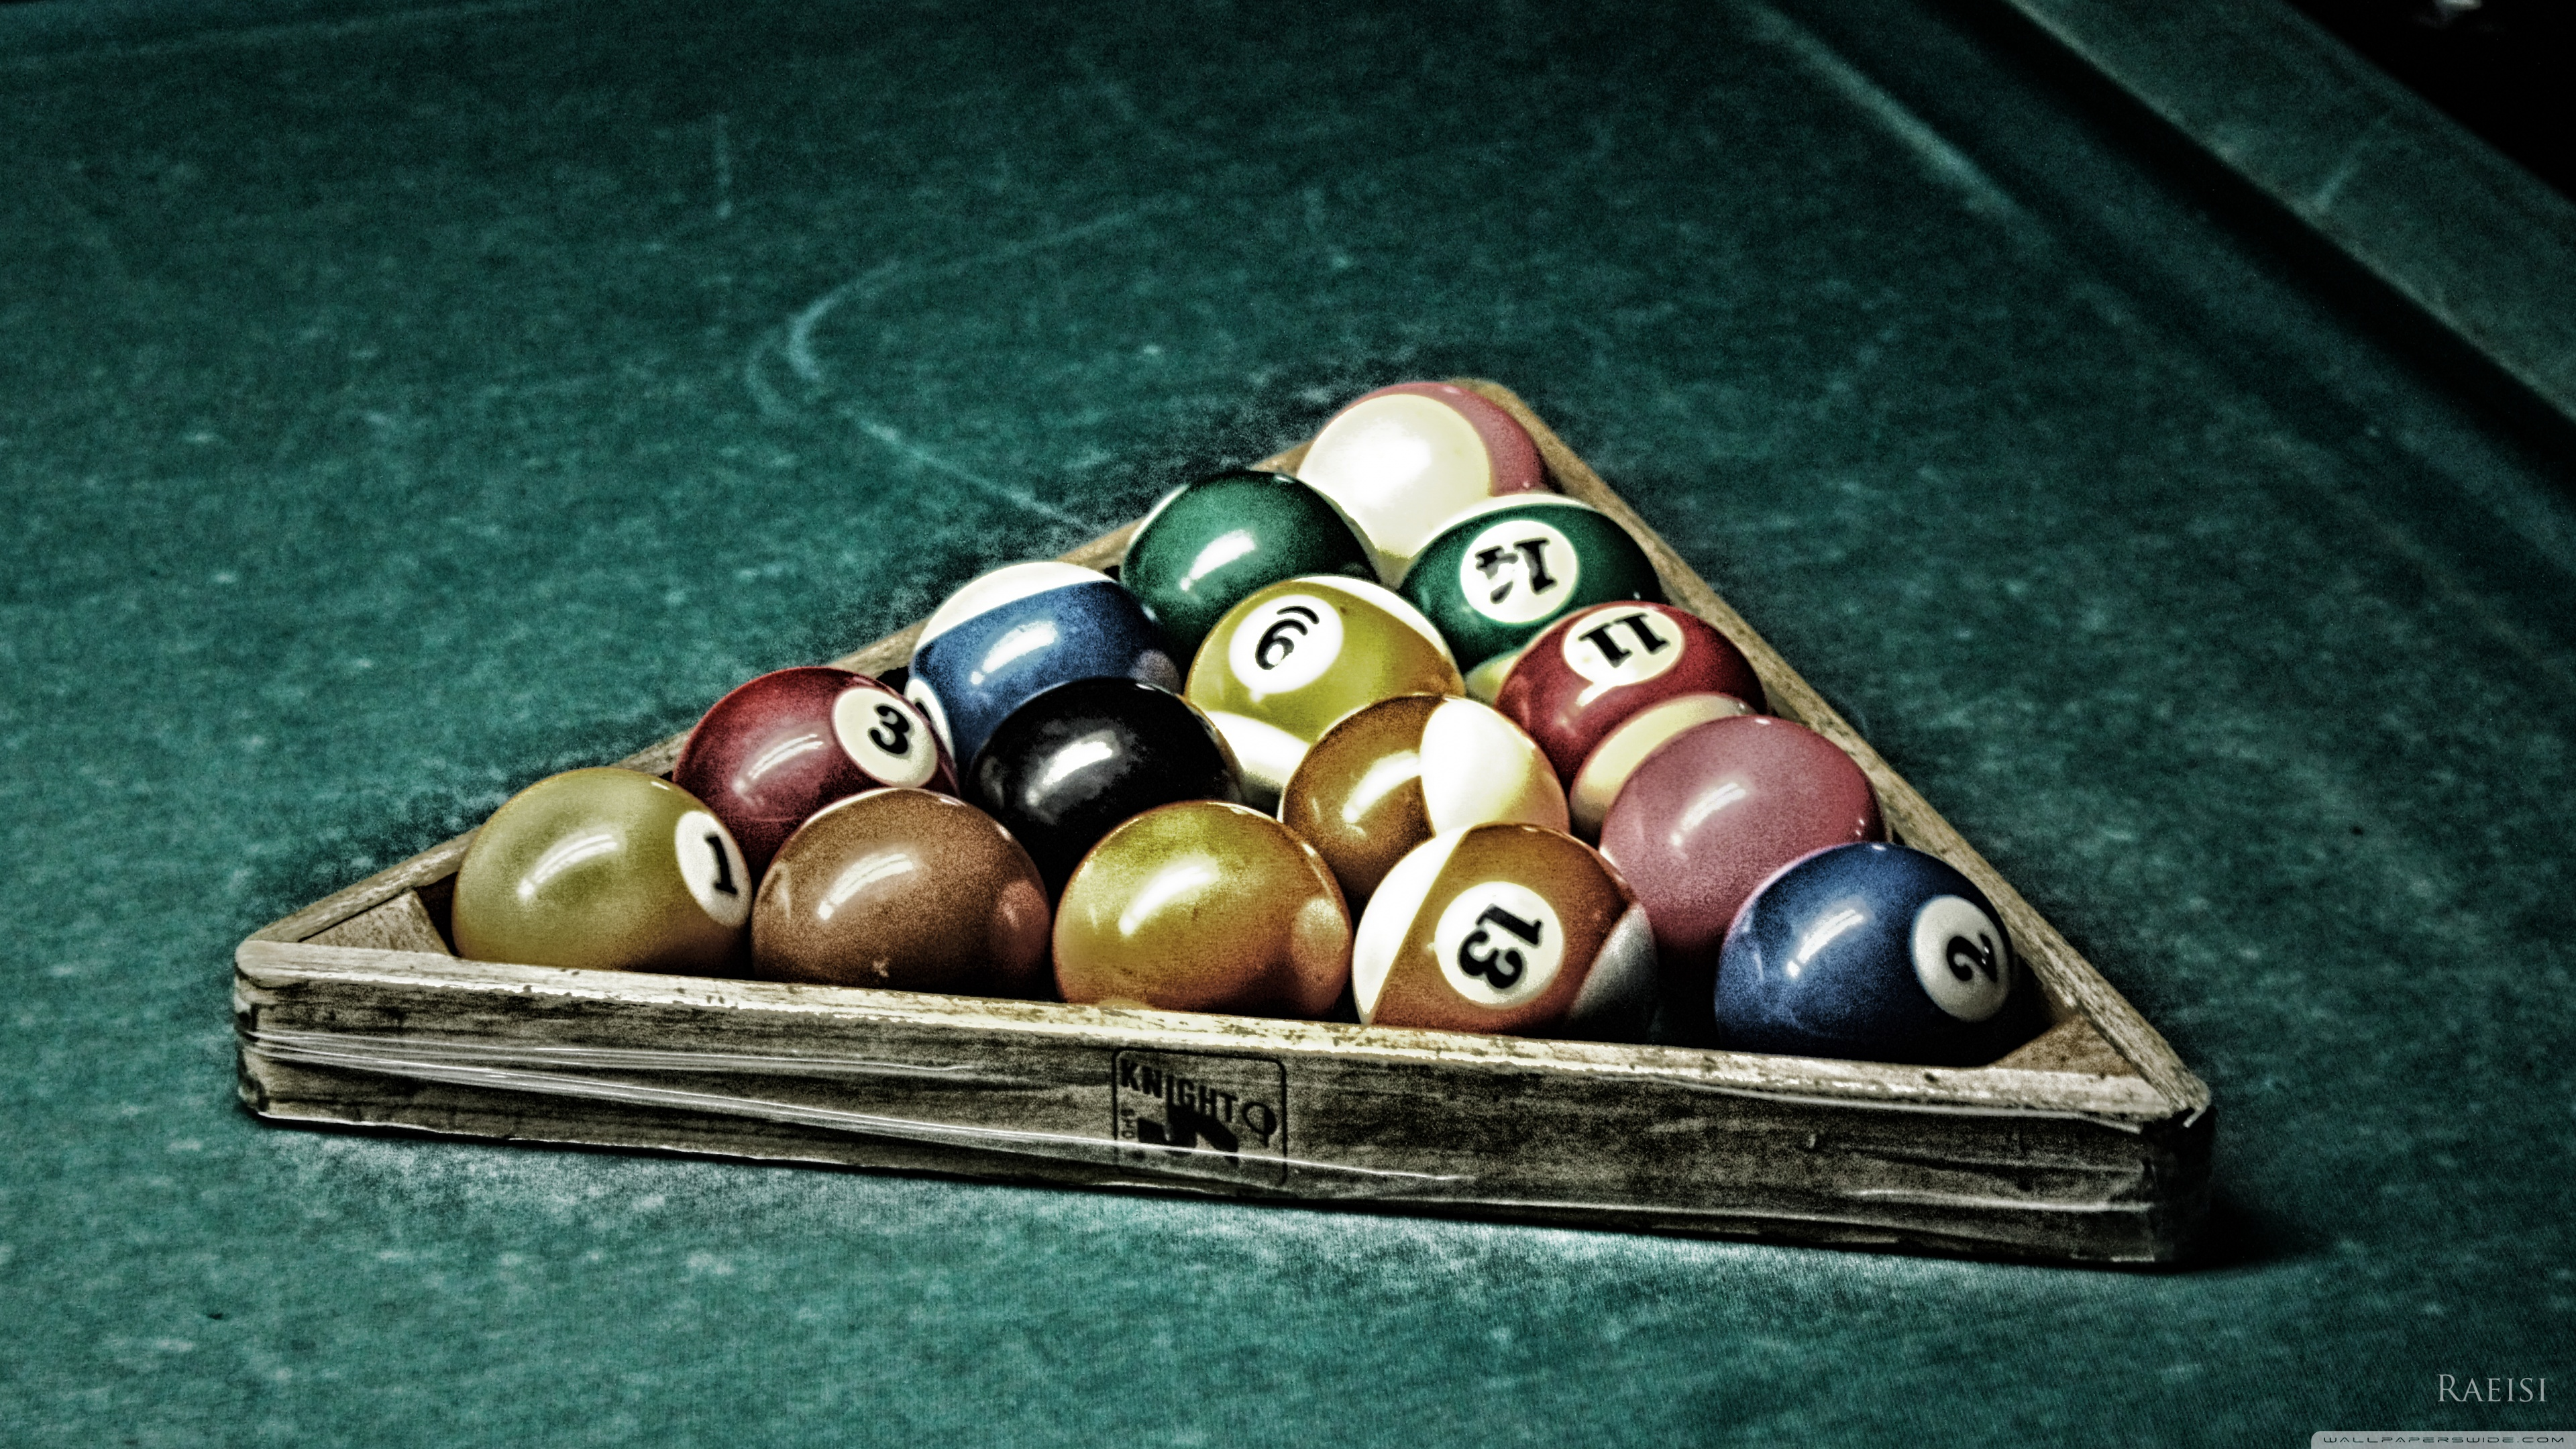 Billiard 4K HD Desktop Wallpaper for 4K Ultra HD TV Wide 3840x2160